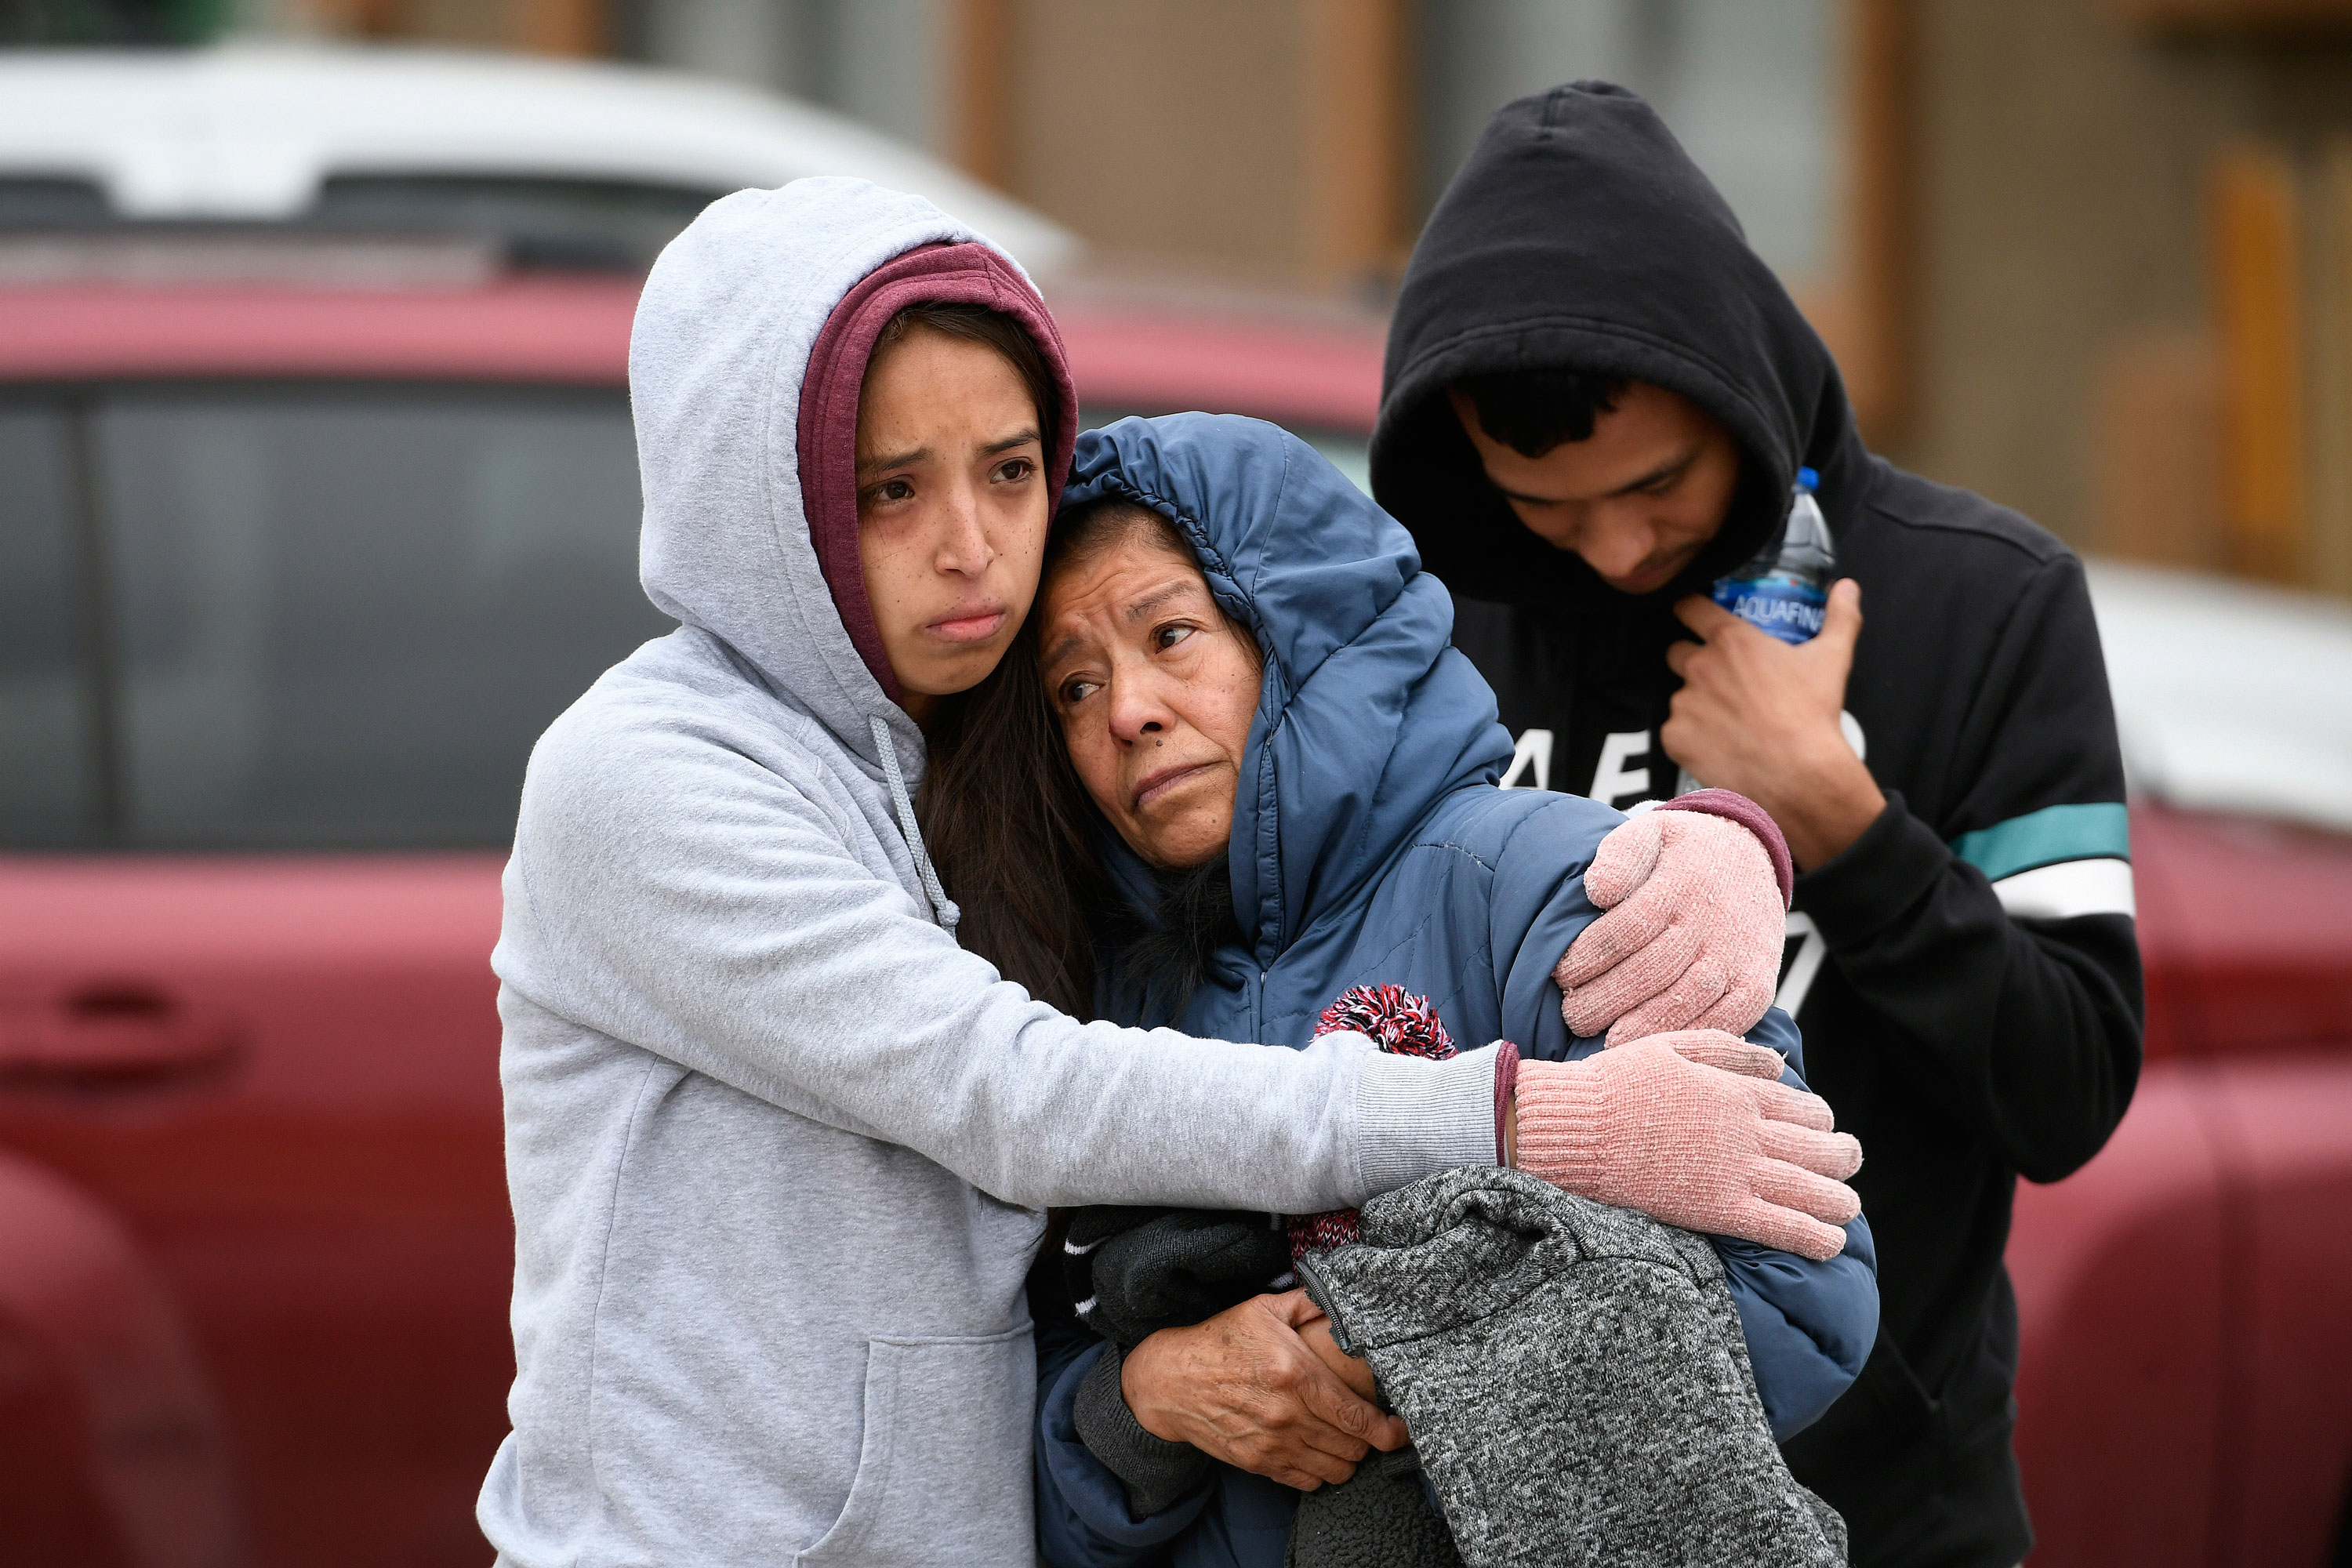 6 people killed at a Colorado Springs birthday party were part of the same extended family, a relative says